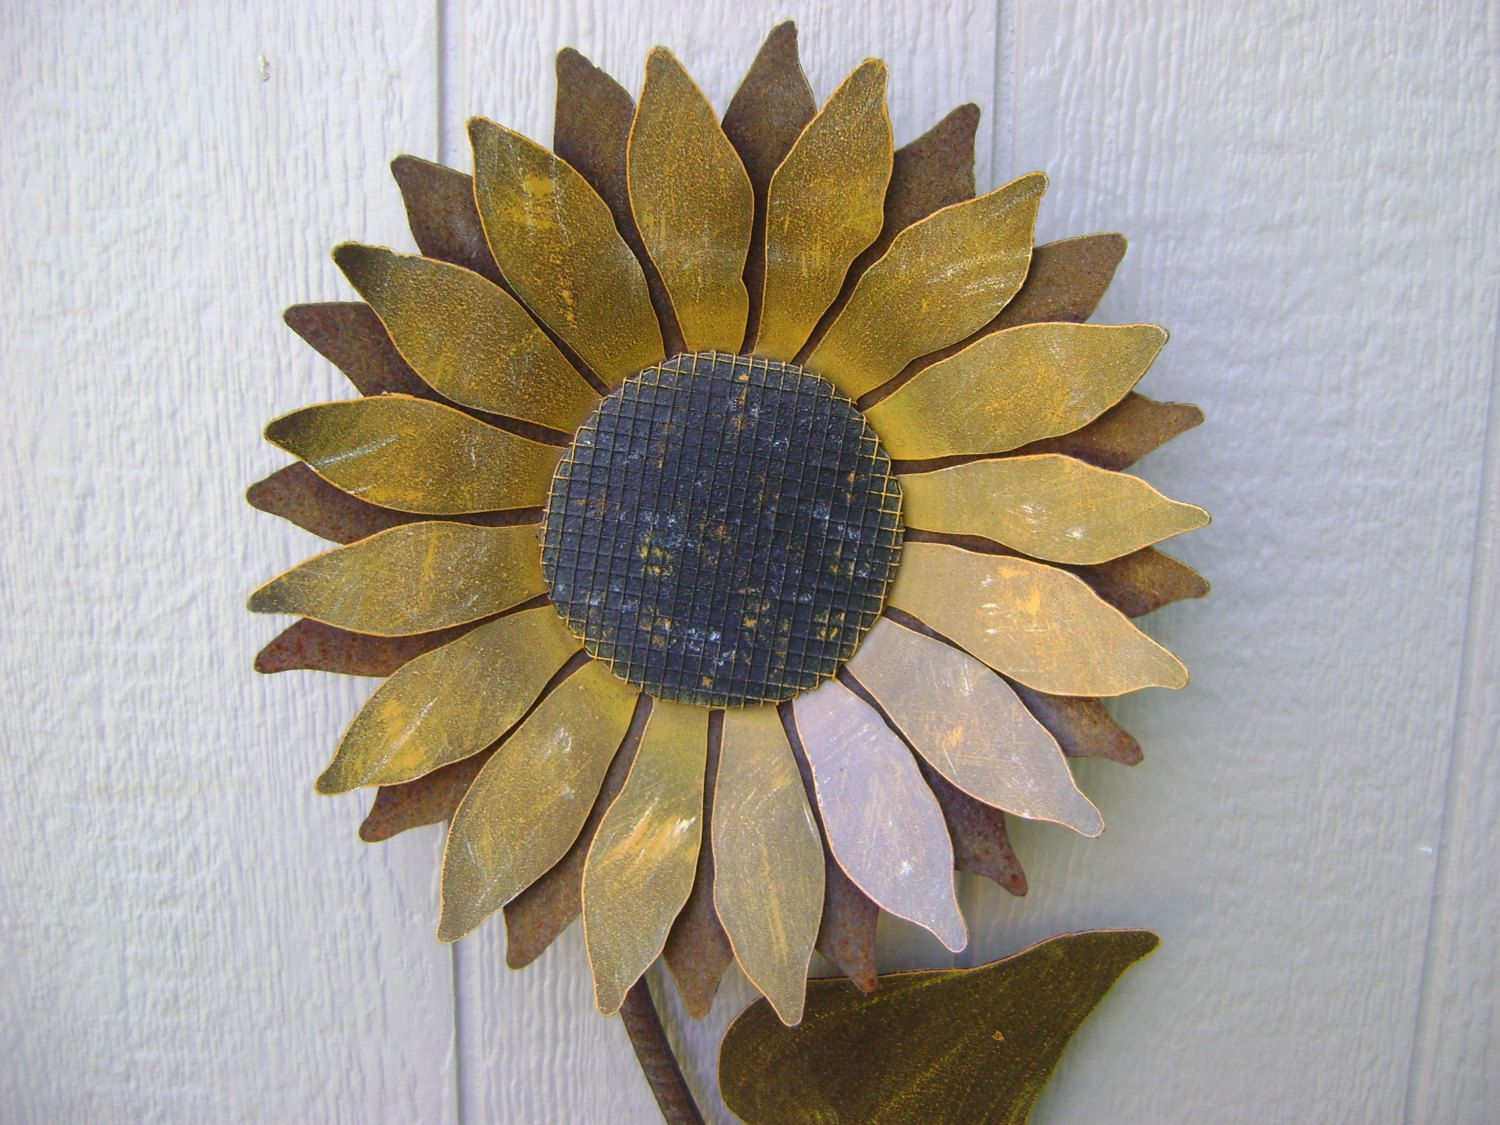 Outdoor Metal Flower Wall Art Beauteous Sunflower Metal Garden Art Sunflower Wall Art Rusty Metal. Decorating Design